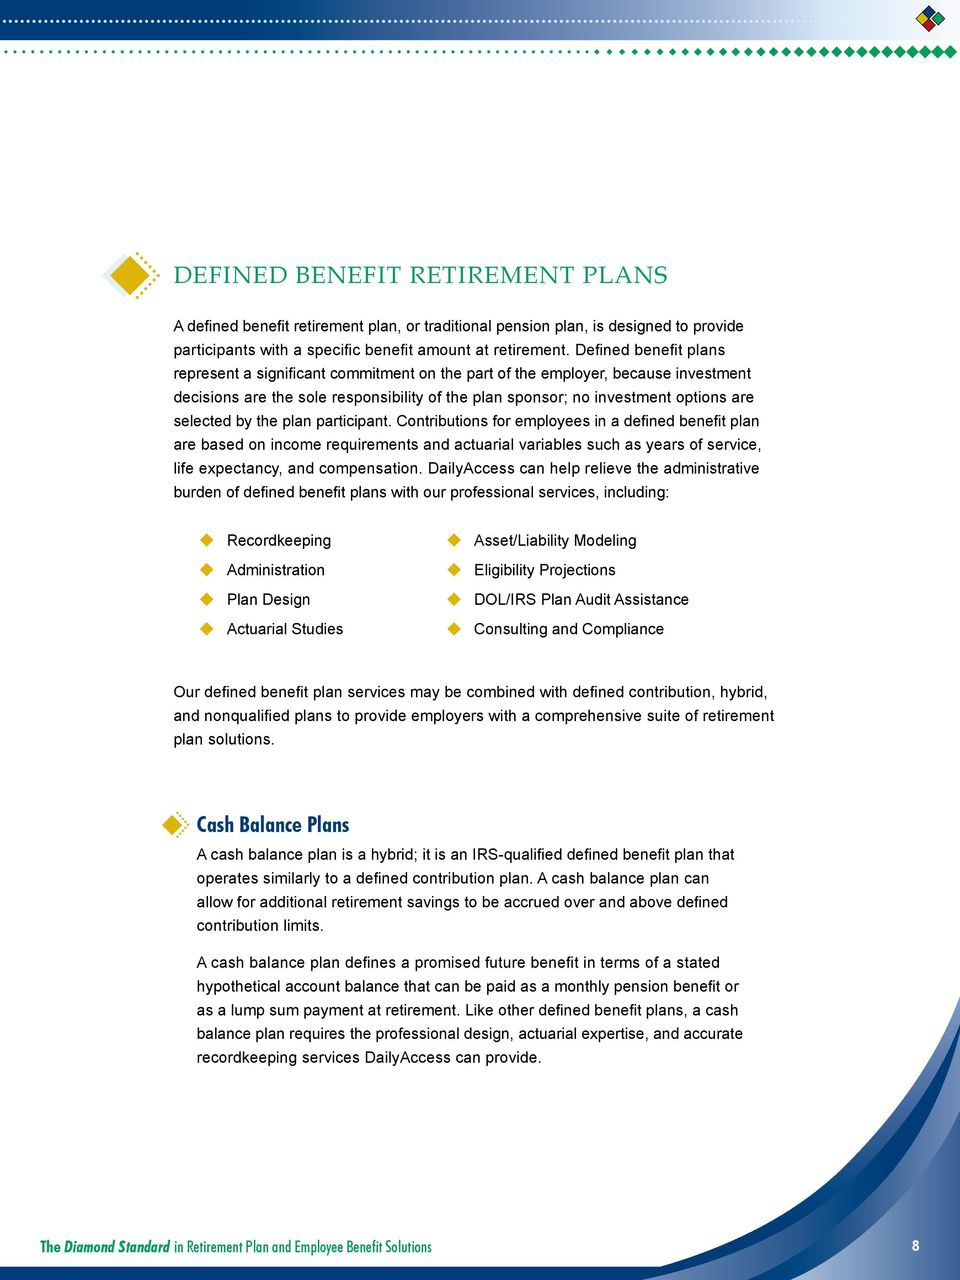 The Diamond Standard in Retirement Plan and Employee ...